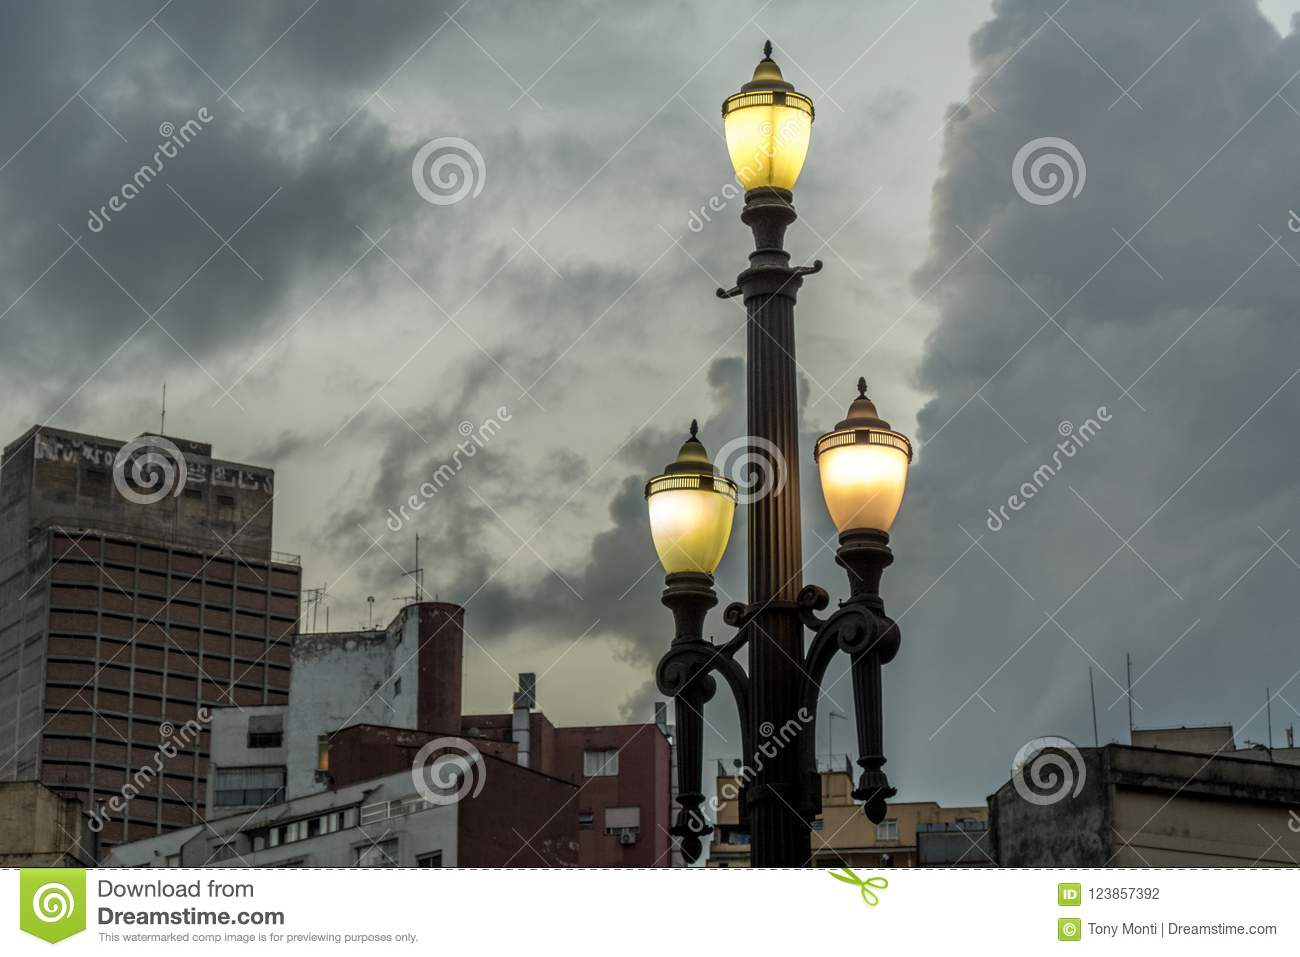 Old street lamp, symbol of the city of Sao Paulo, Brazil, in fro